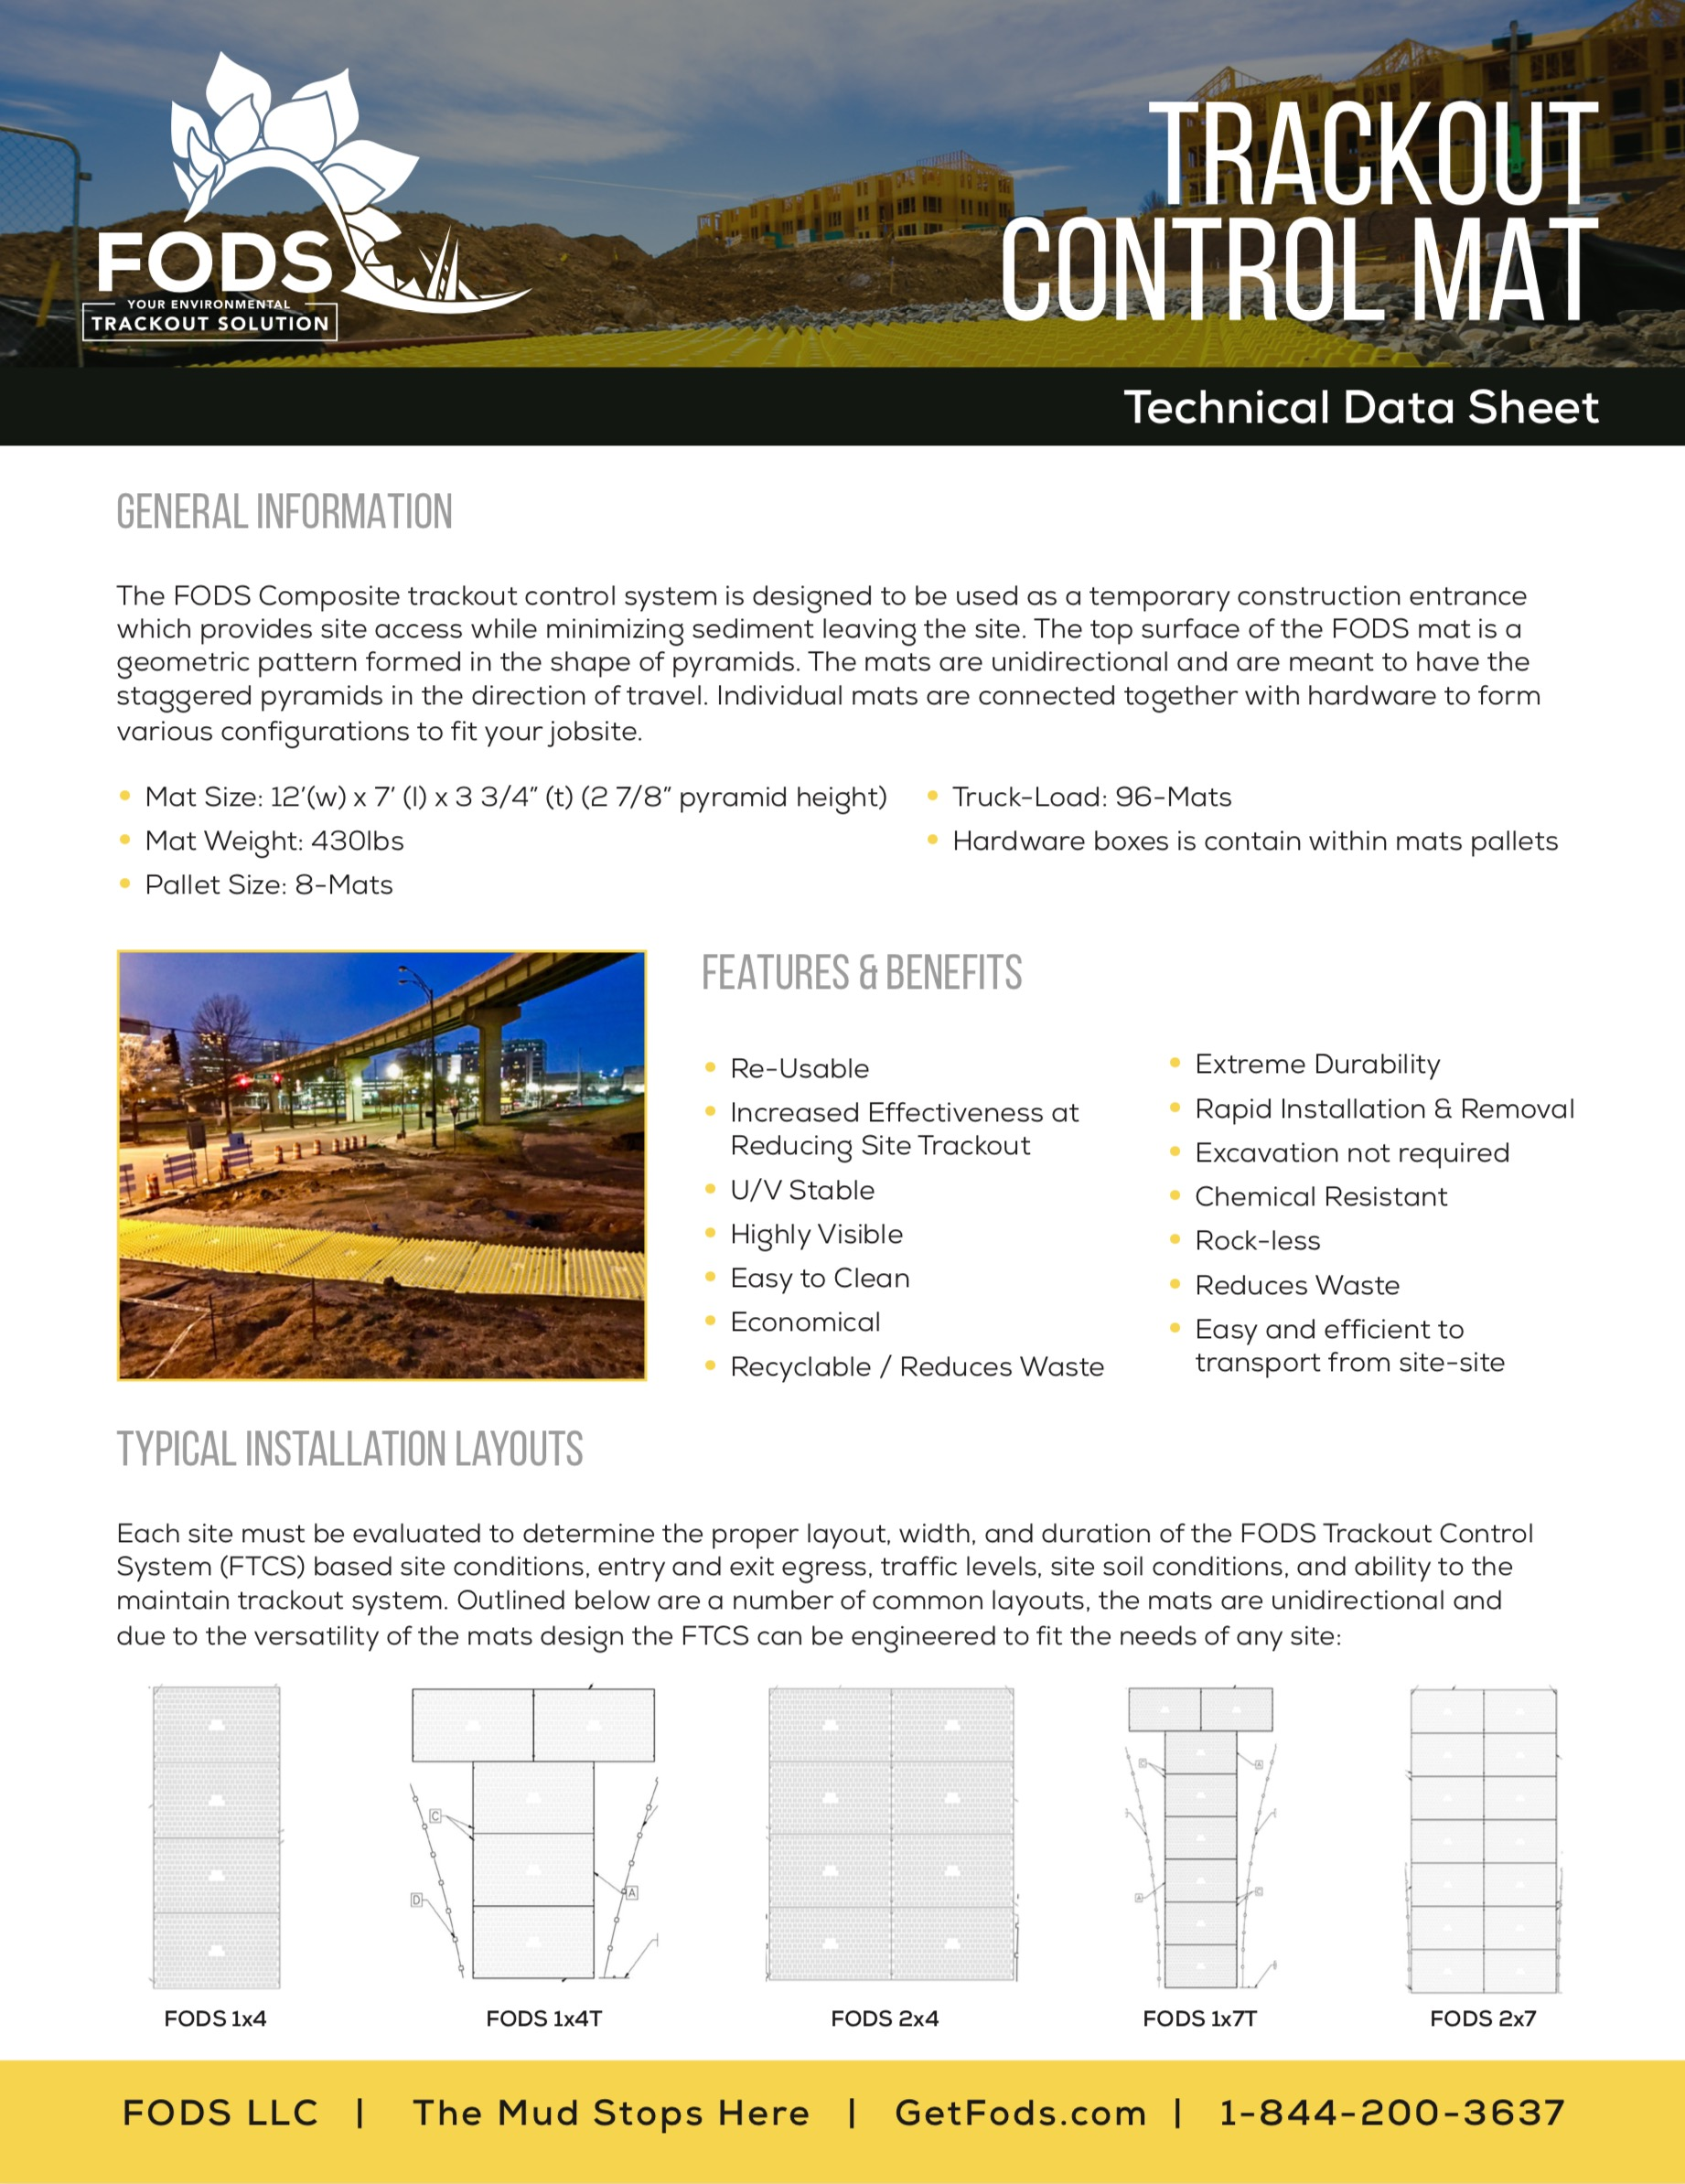 FODS Technical Data Sheet